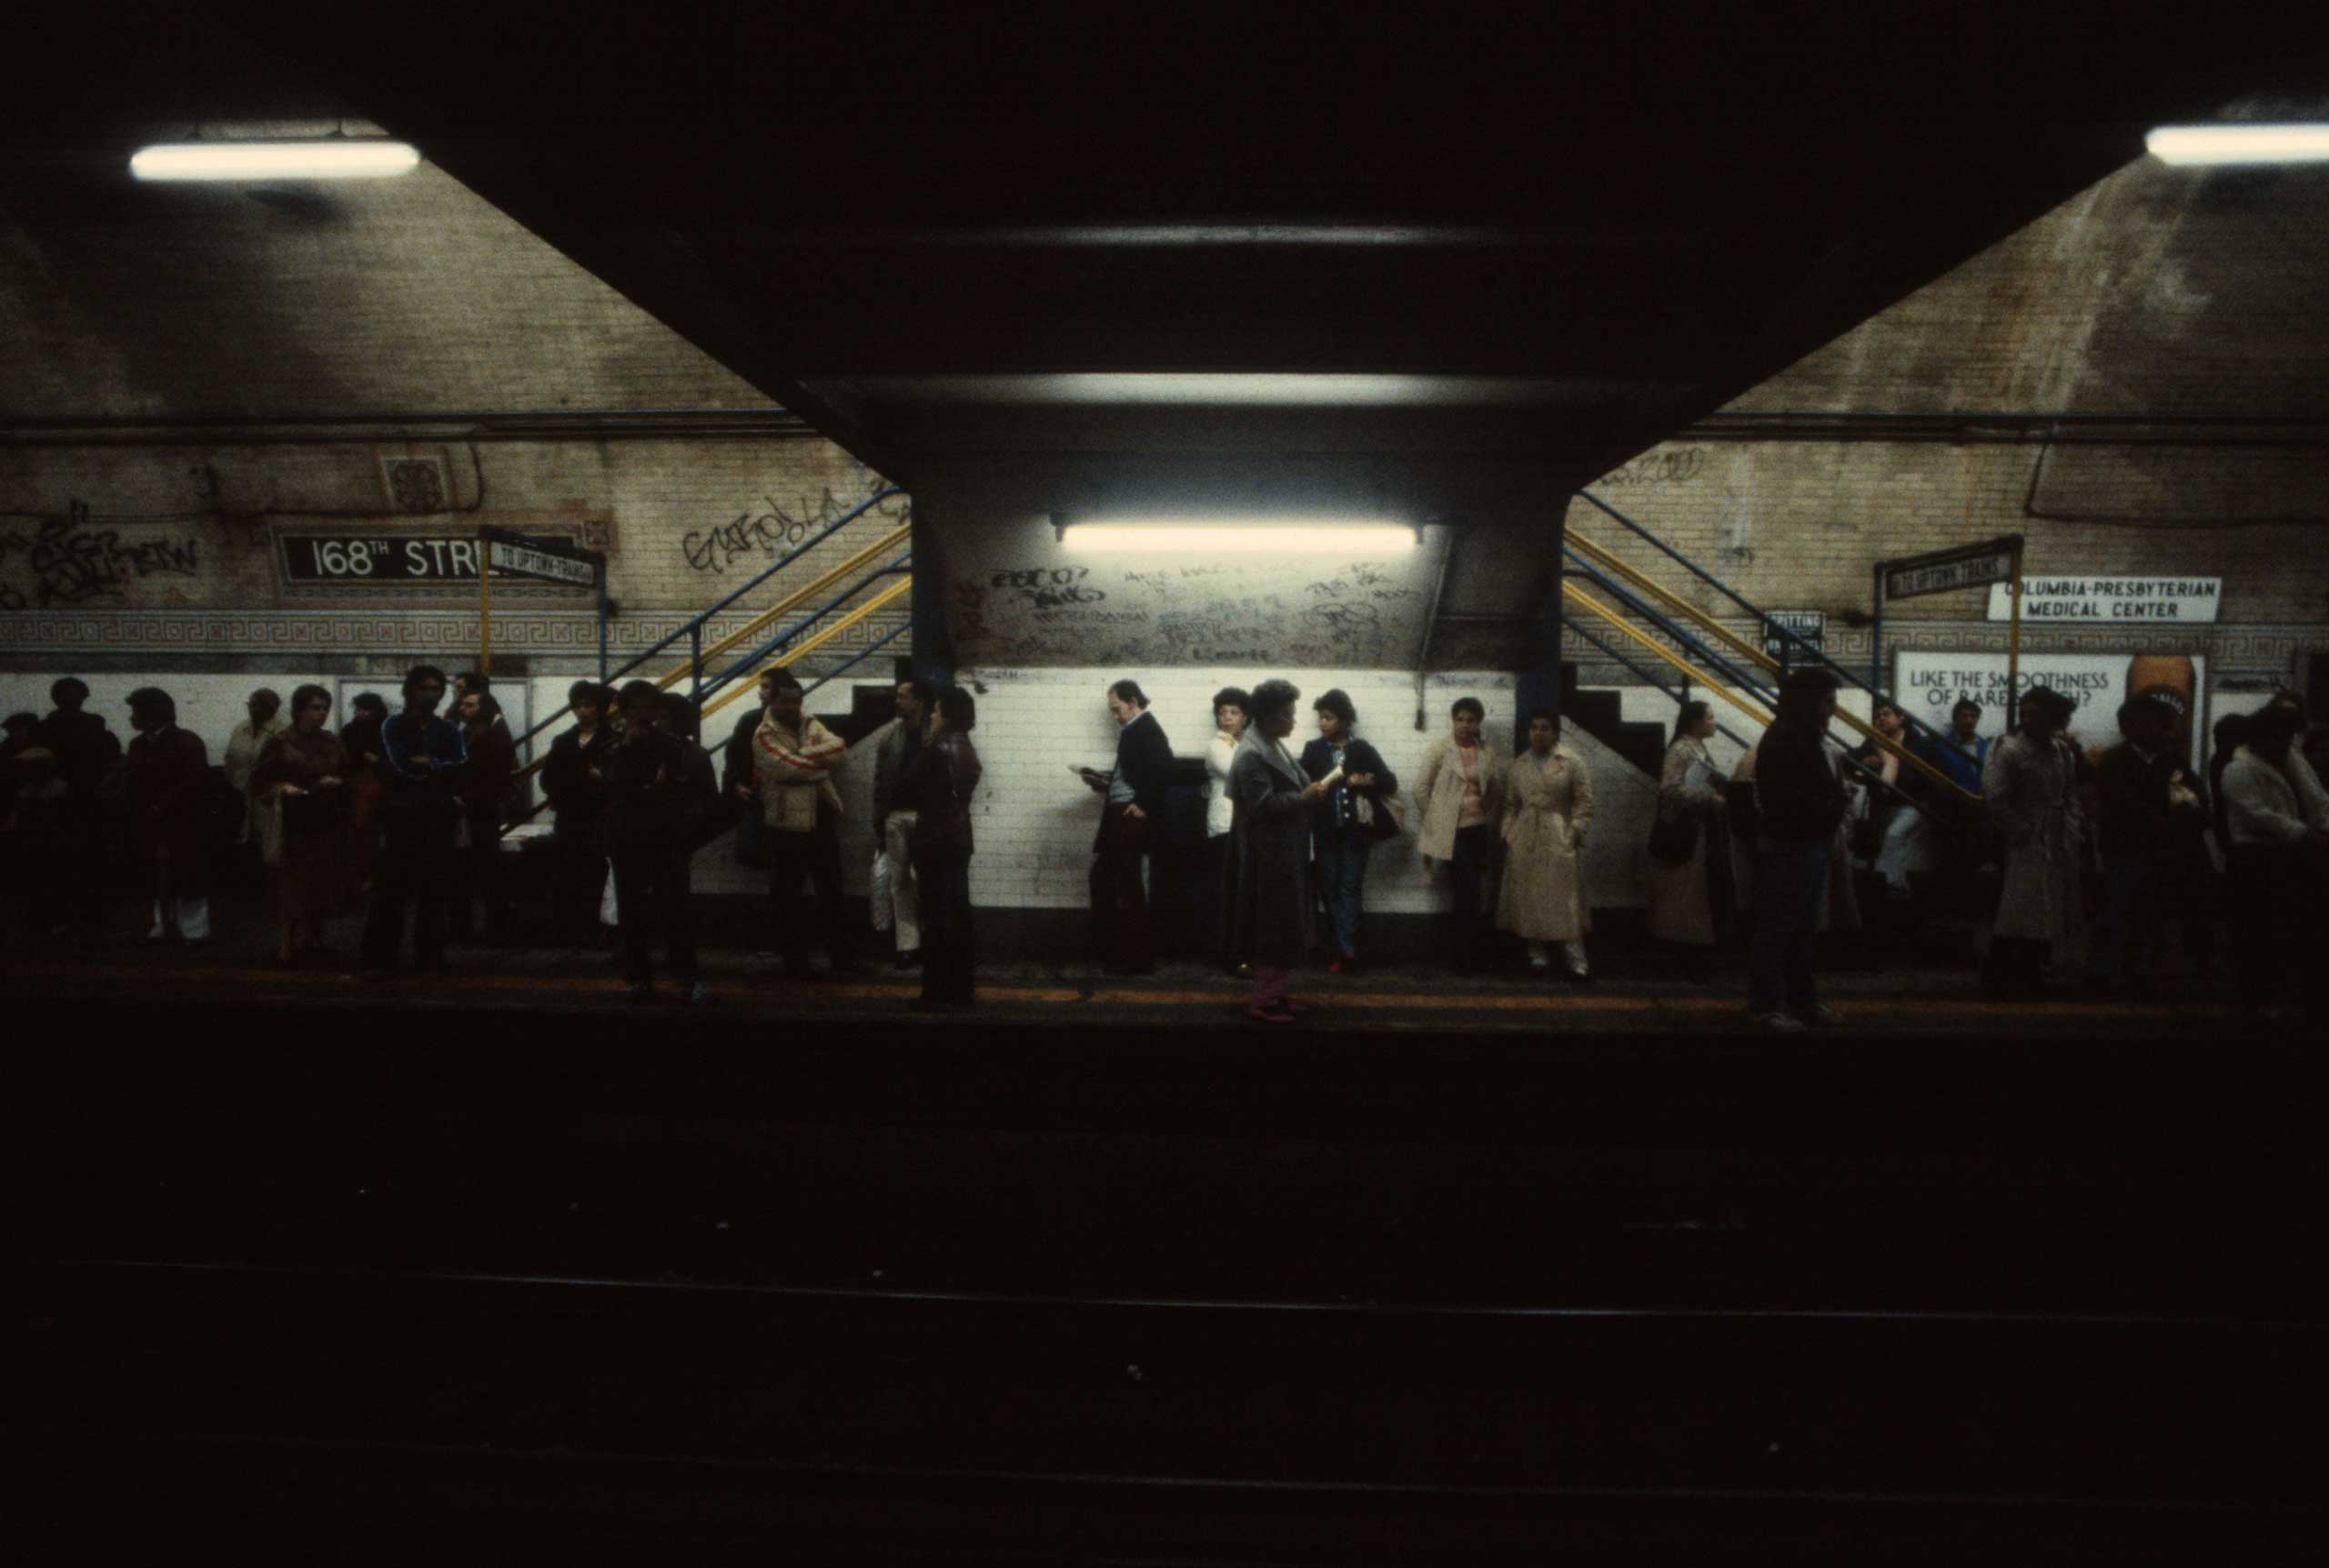 Commuters wait for a train at 168th Street station in Manhattan, 1981.